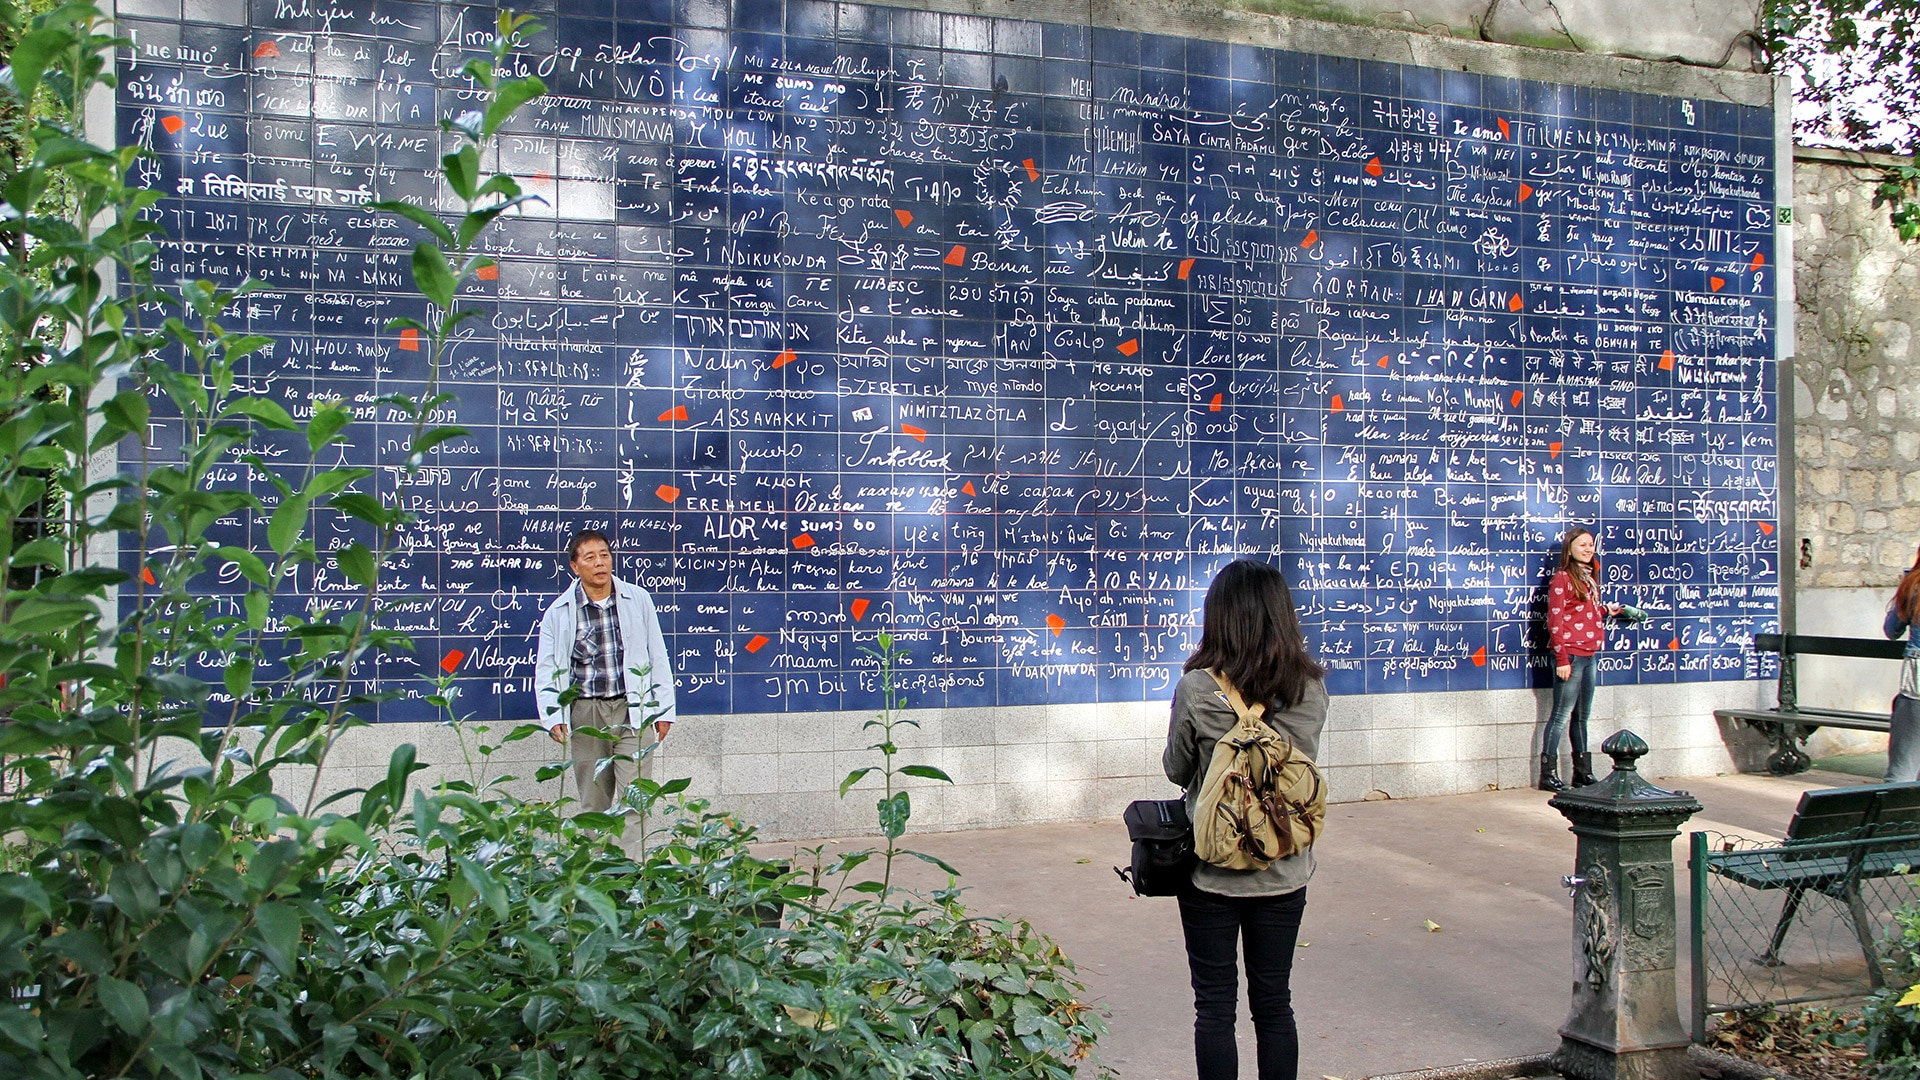 The Wall of Love, Paris, France